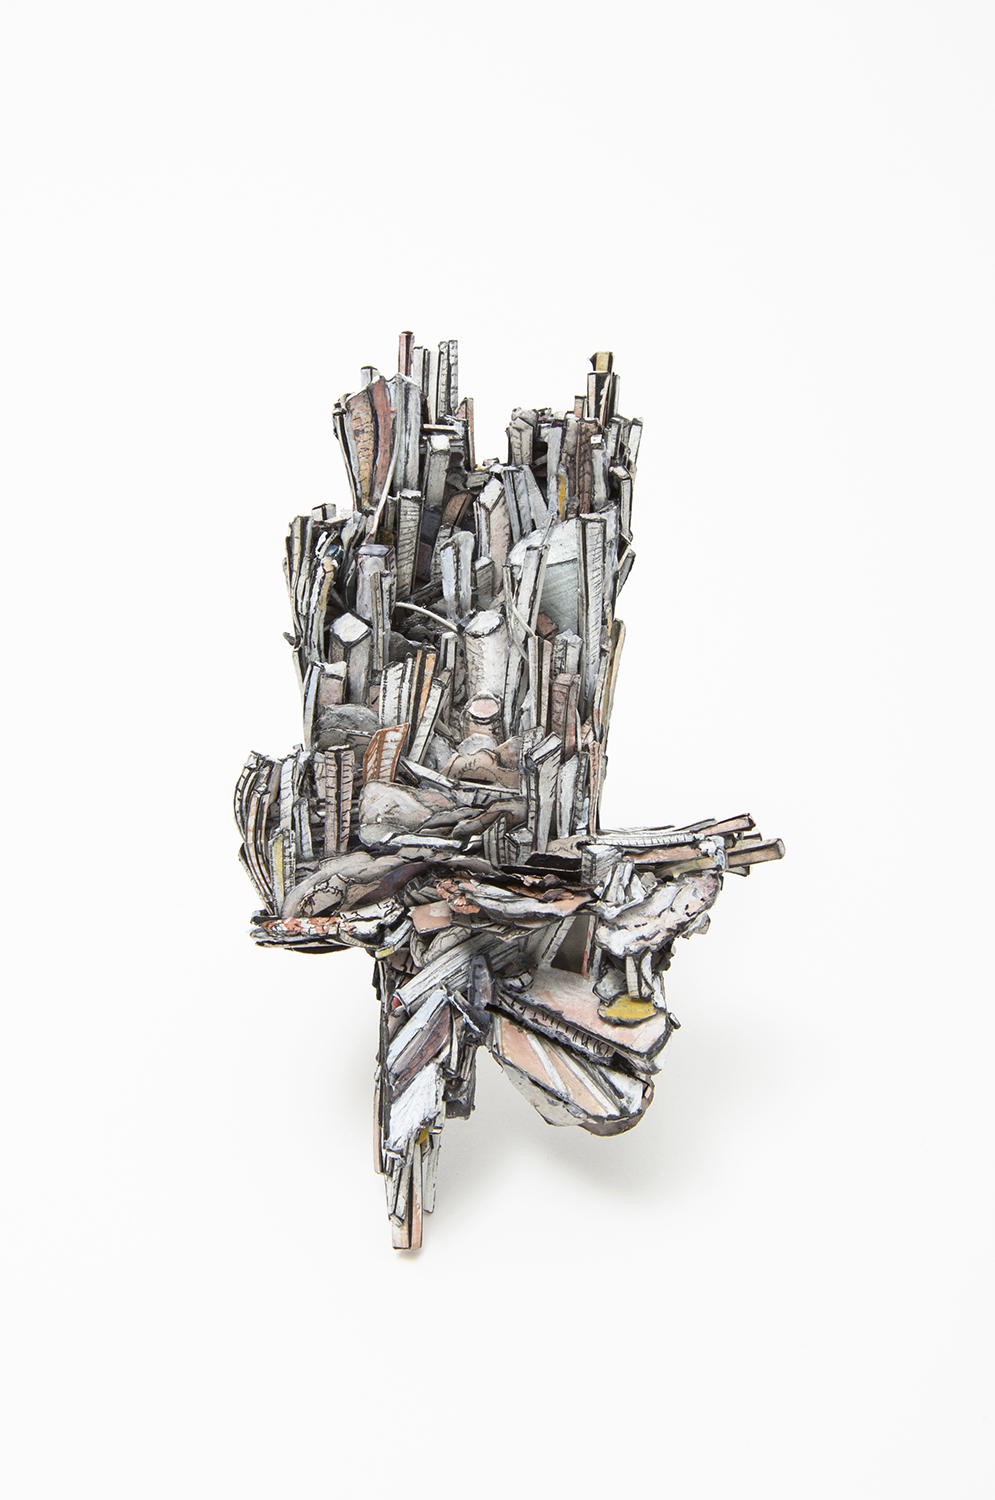 Untitled | Brooch | 2020 | Paper, paint, silver, wood, graphite, stainless steel | 115X69X30mm